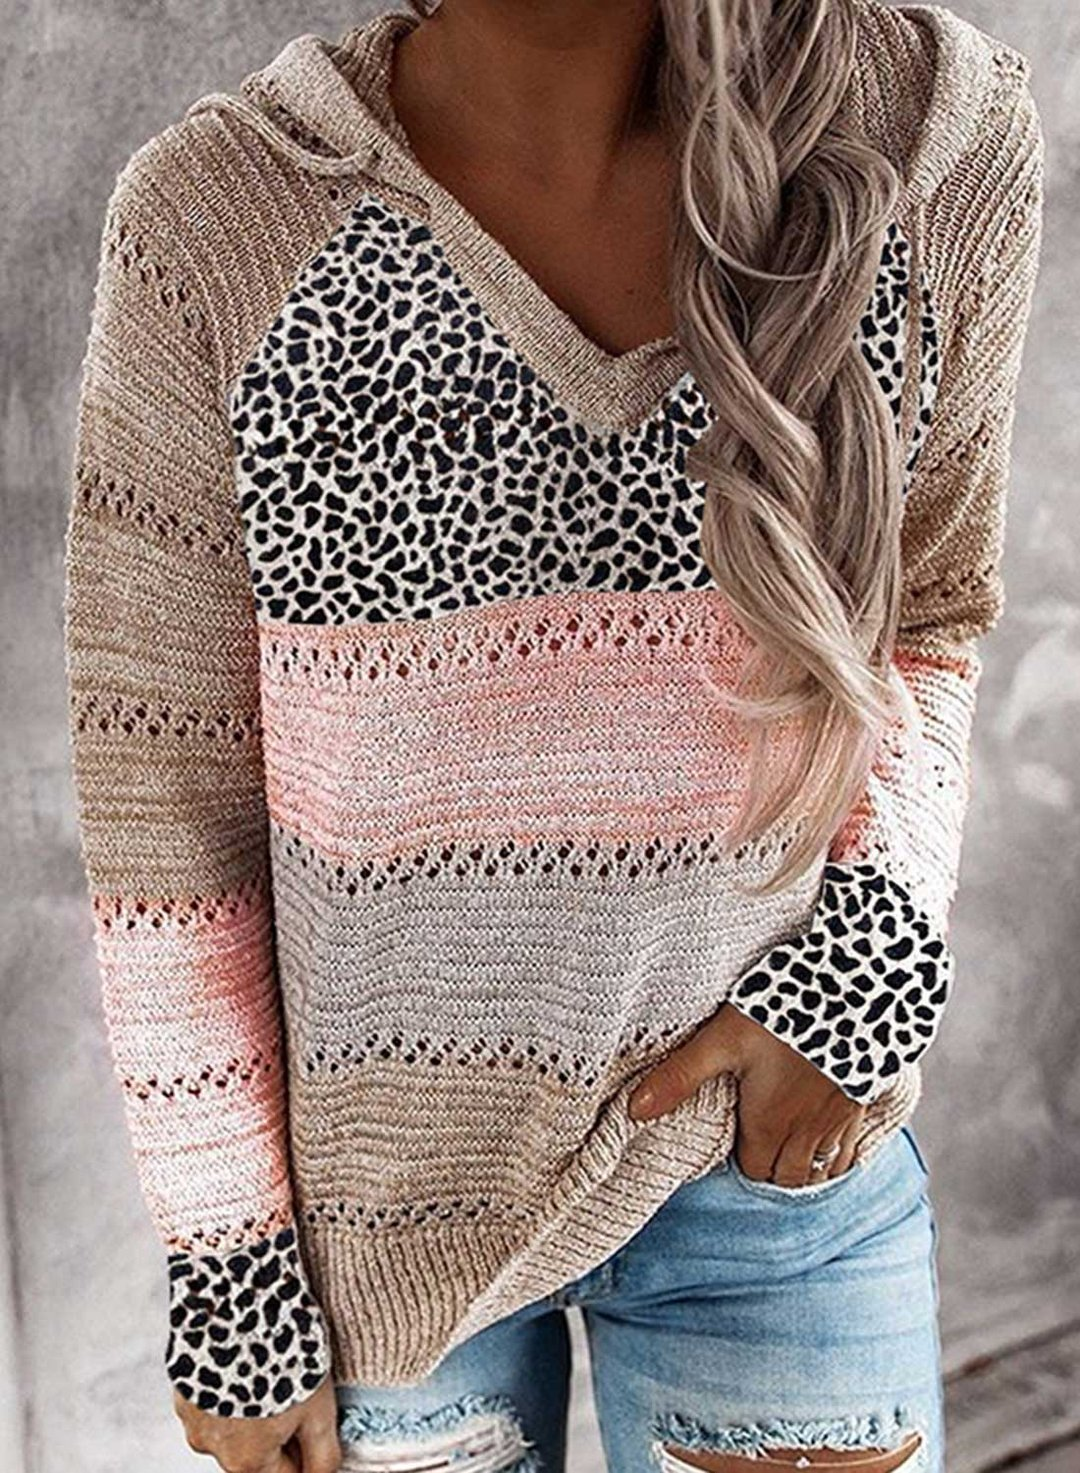 Pink Women's Sweaters Hooded Leopard Color Block Long Sleeve Casual Cut-out Drawstring Sweater LC2721052-10